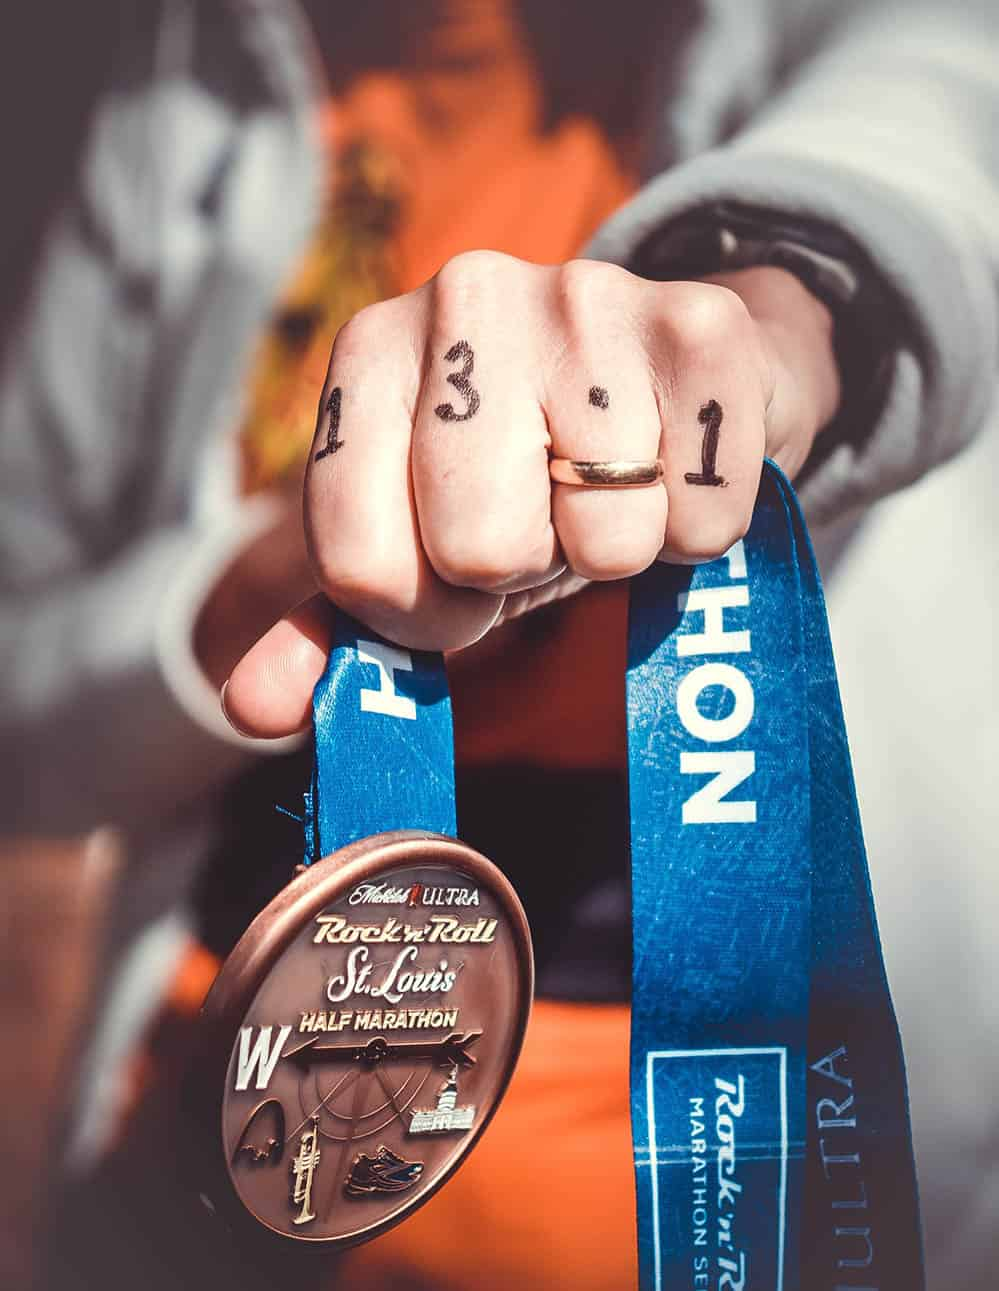 runner displaying his bling trophy medal after winning half marathon